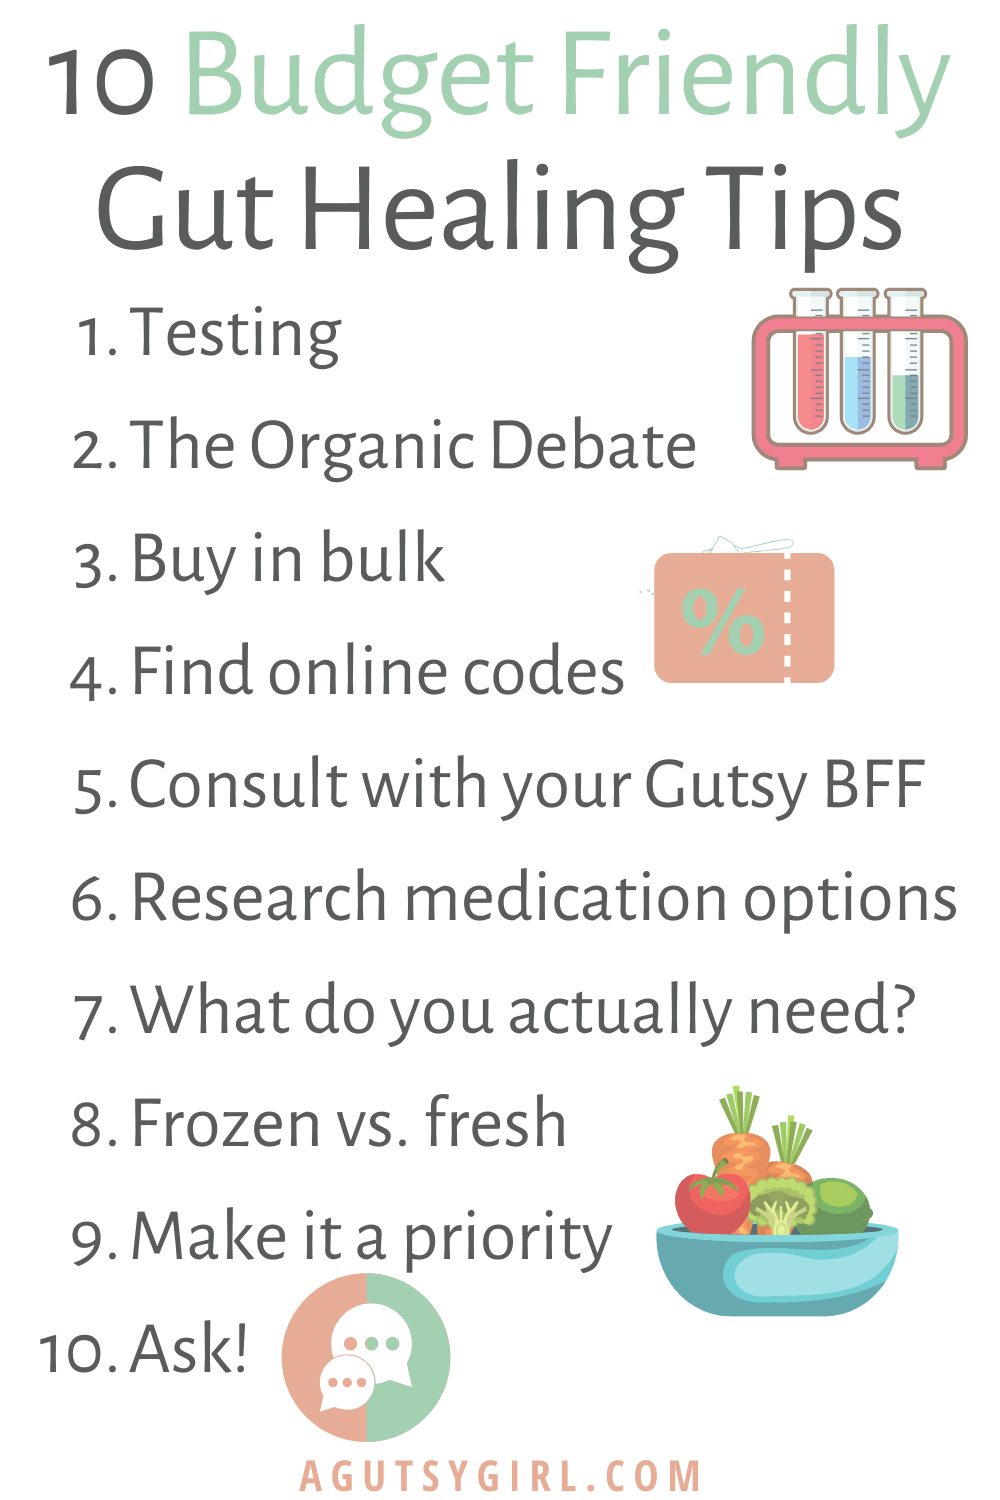 10 Budget Friendly Gut Healing Tips agutsygirl.com #guthealth #guthealing #budgeting #groceryshopping